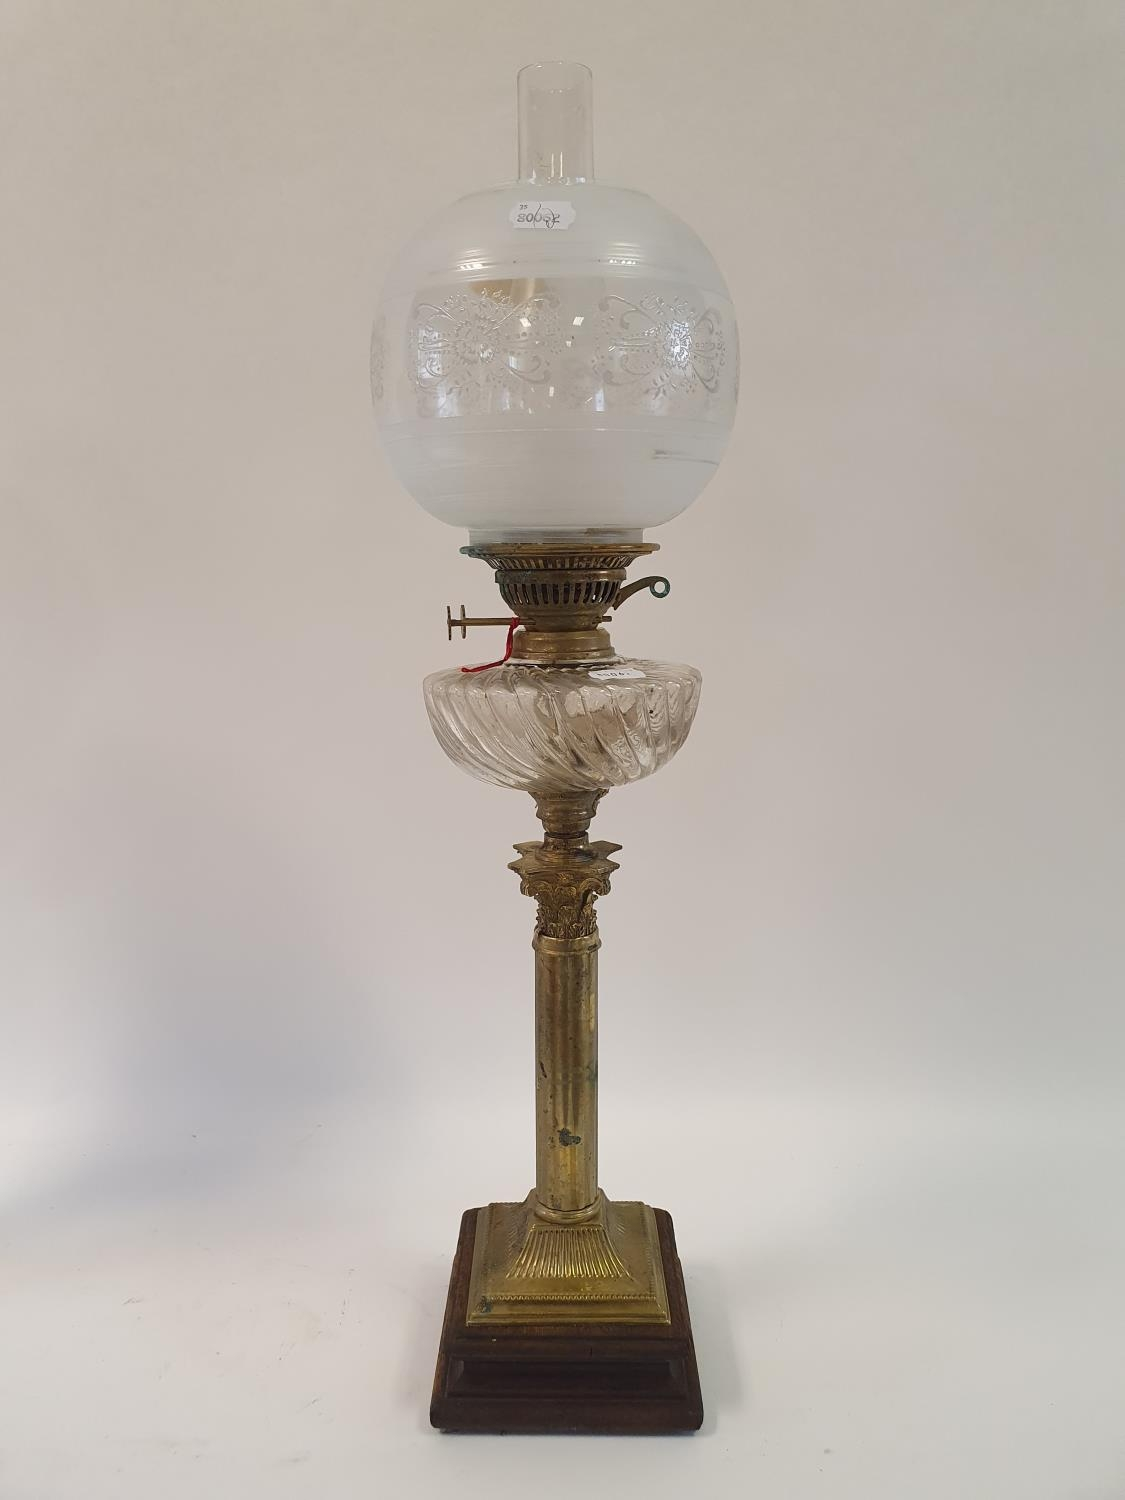 An oil lamp, with an acid etched glass shade, a clear glass well, on a brass base in the form of a